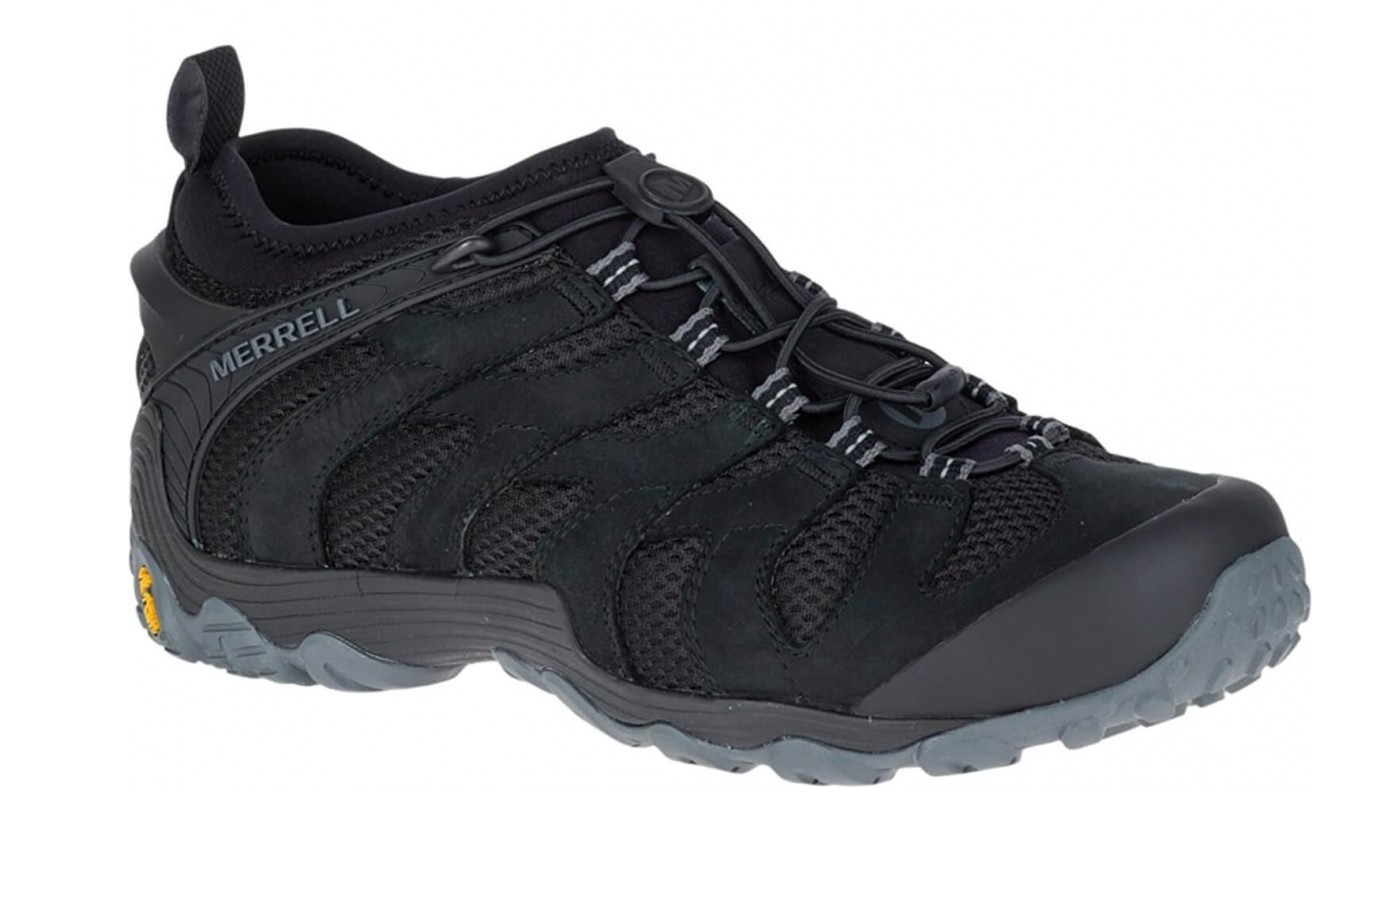 This shoe is offered in two rugged colors, black and brown.